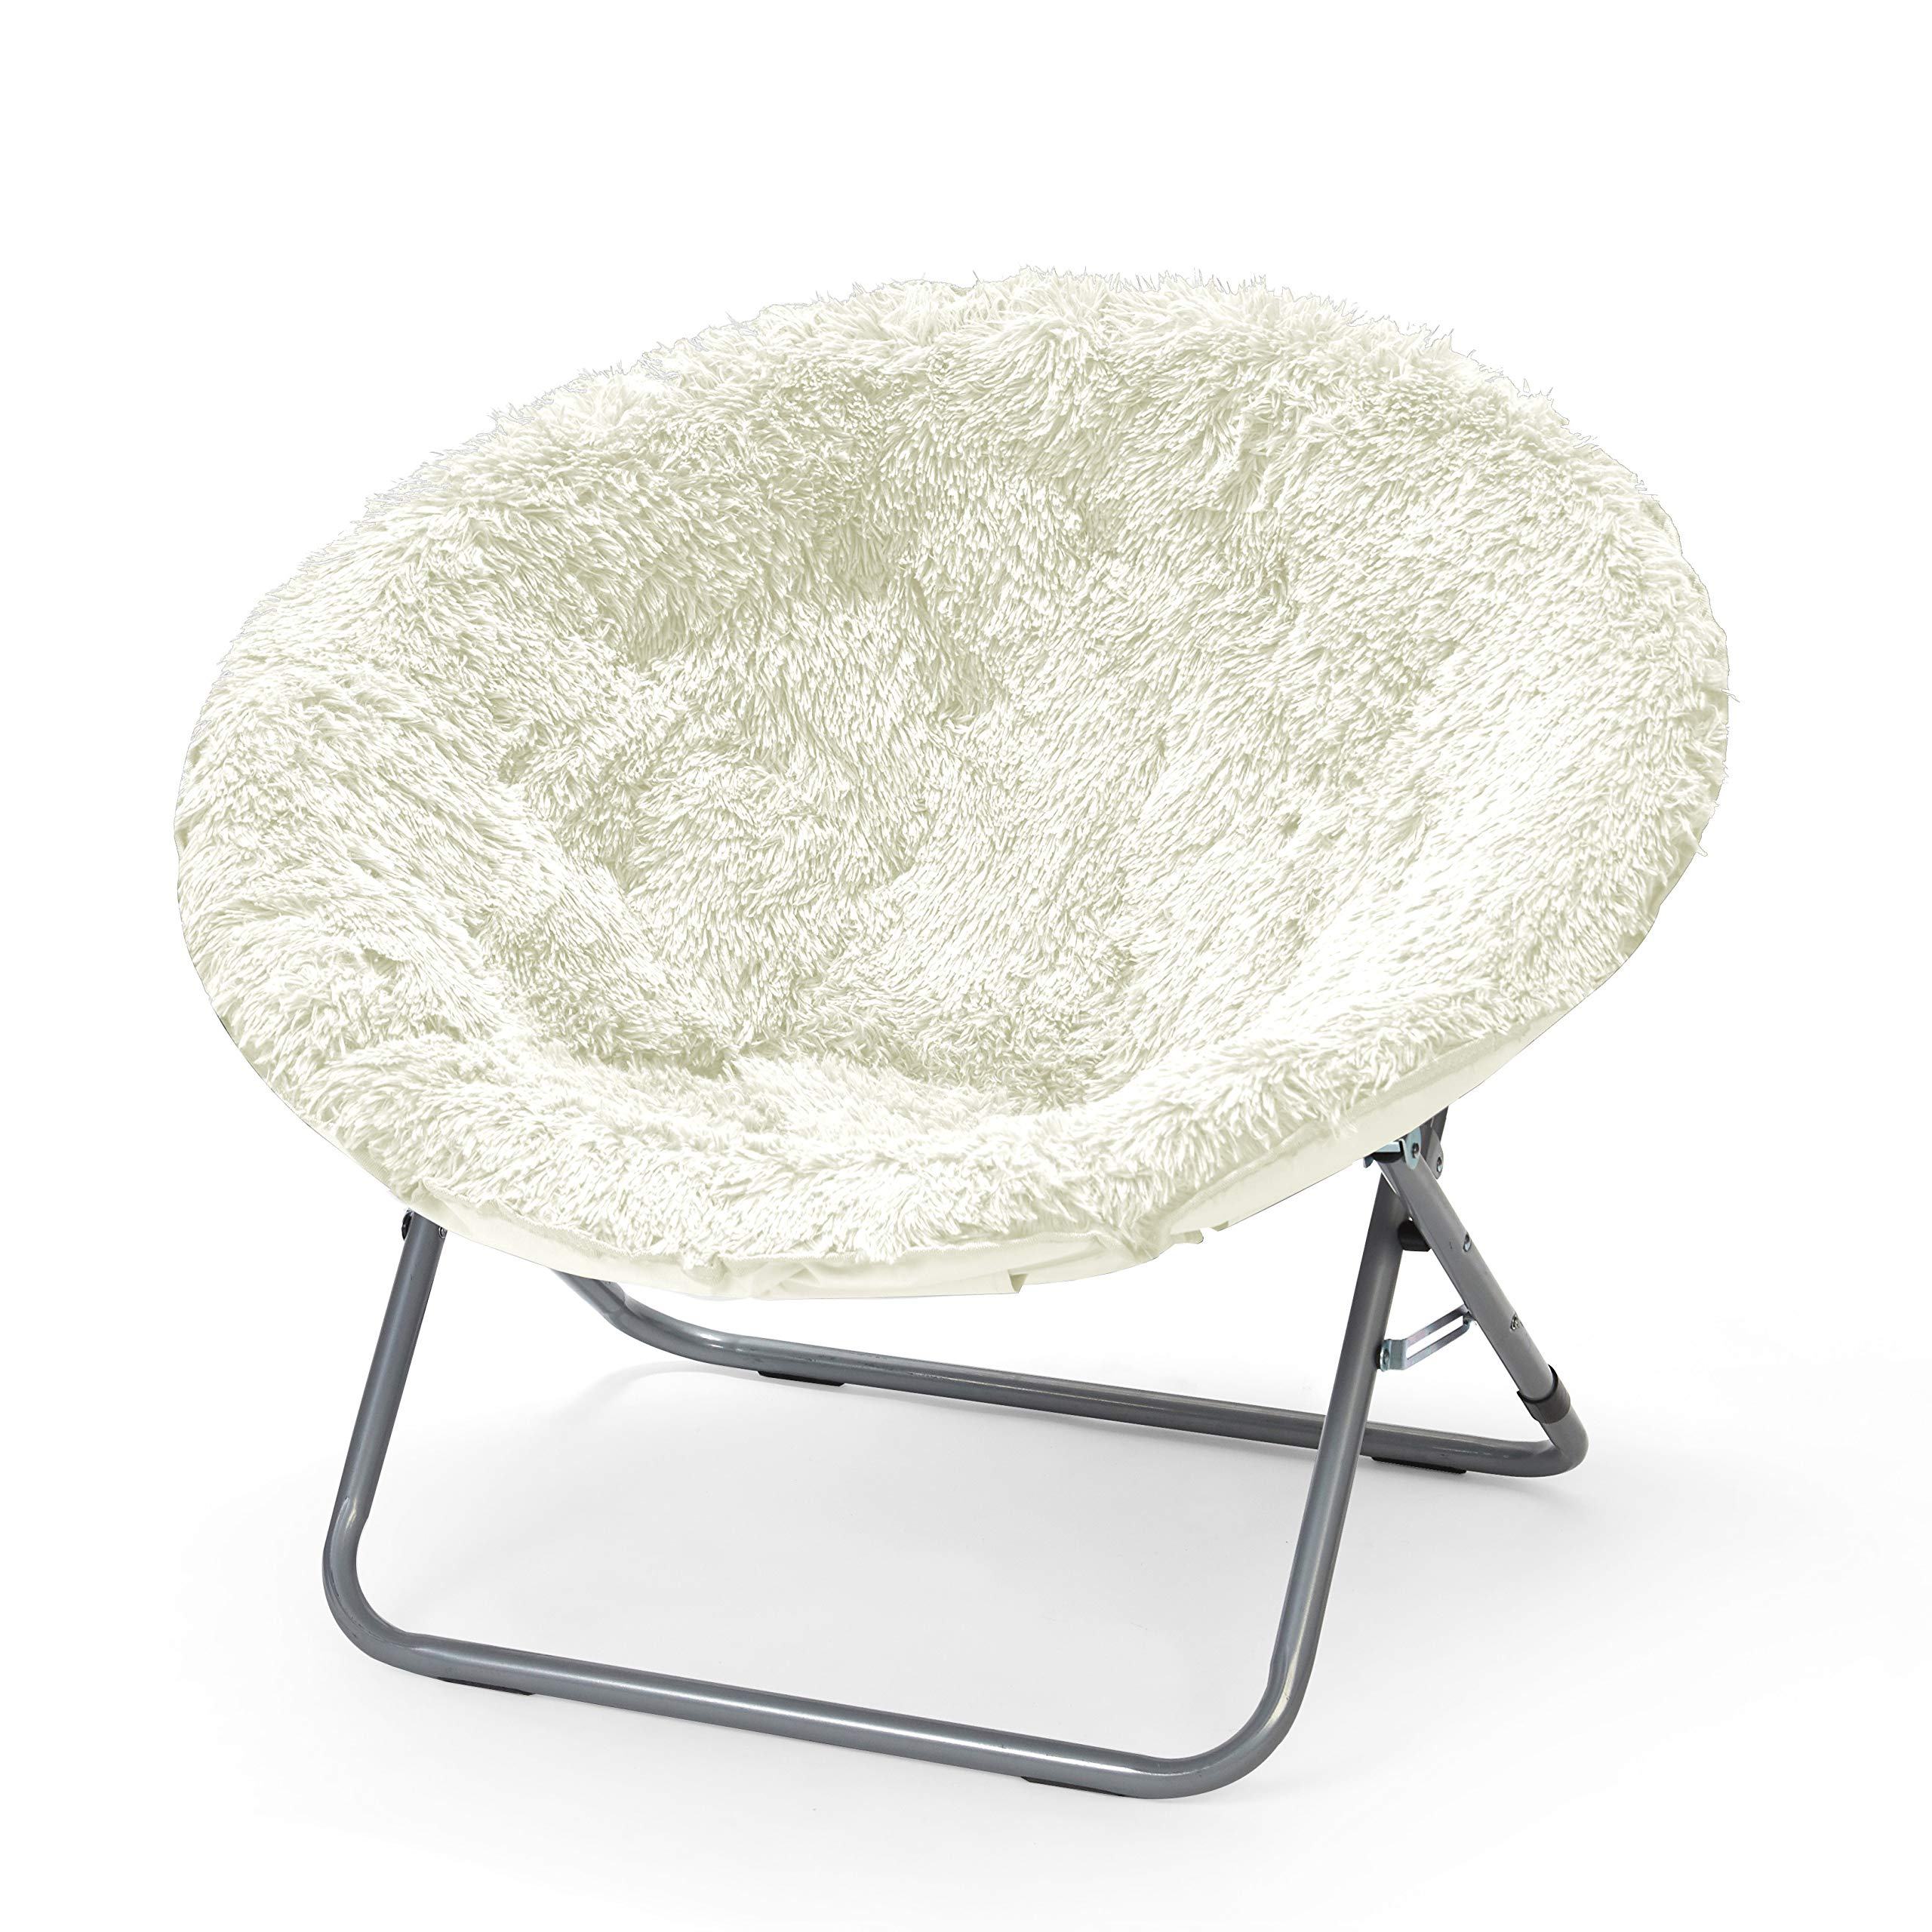 Urban Shop Oversized Mongolian Saucer Chair, White by Urban Shop